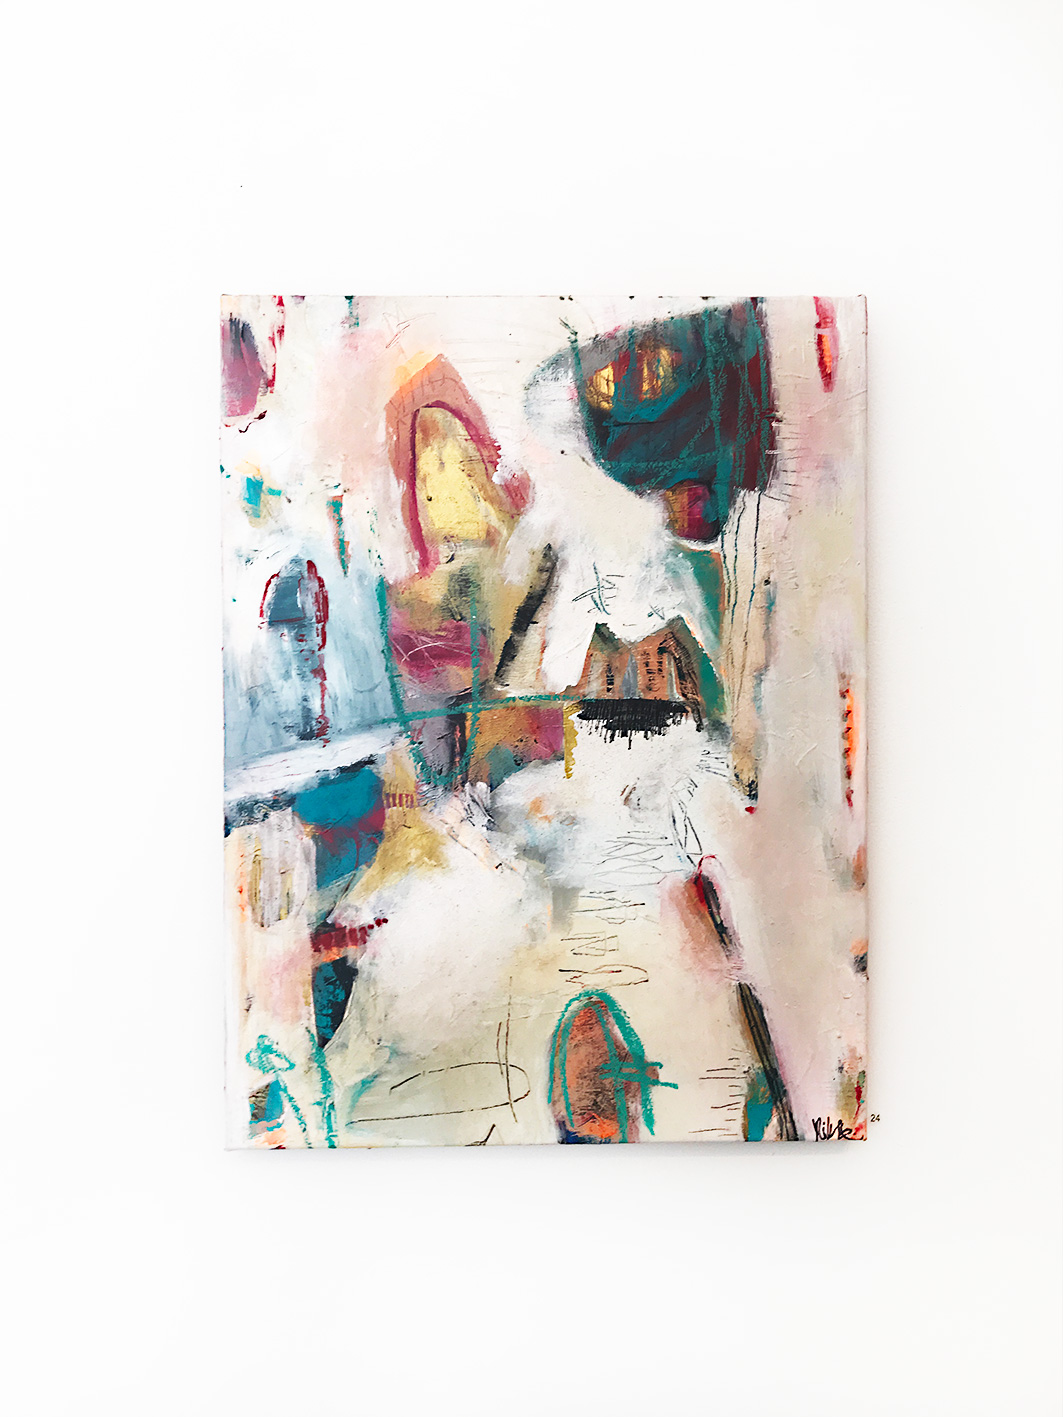 Nikki Coffelt,  Primitive , Mixed Media on canvas 46 x 61 cm